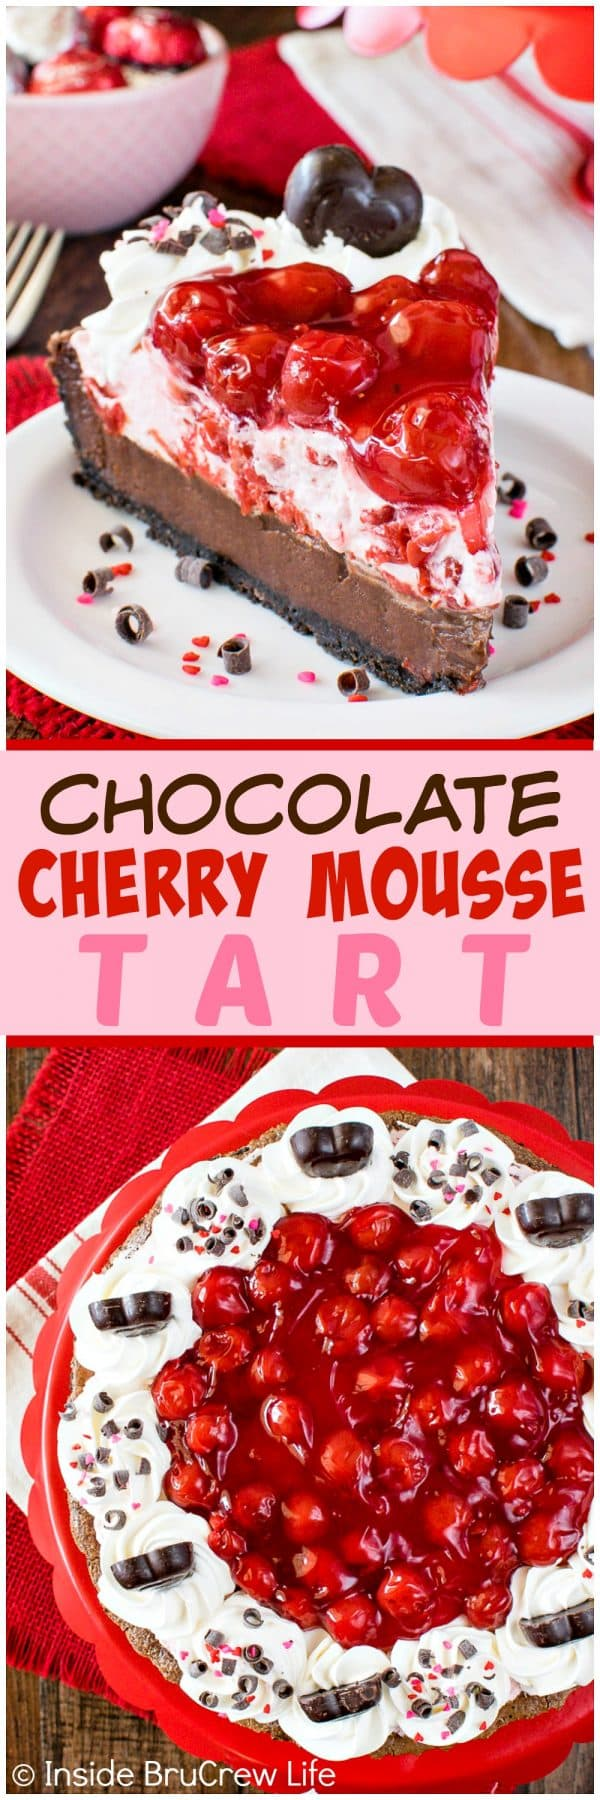 Chocolate Cherry Mousse Tart - a chocolate fudge topped with cherry mousse and pie filling makes an incredible dessert recipe for Valentine's day!